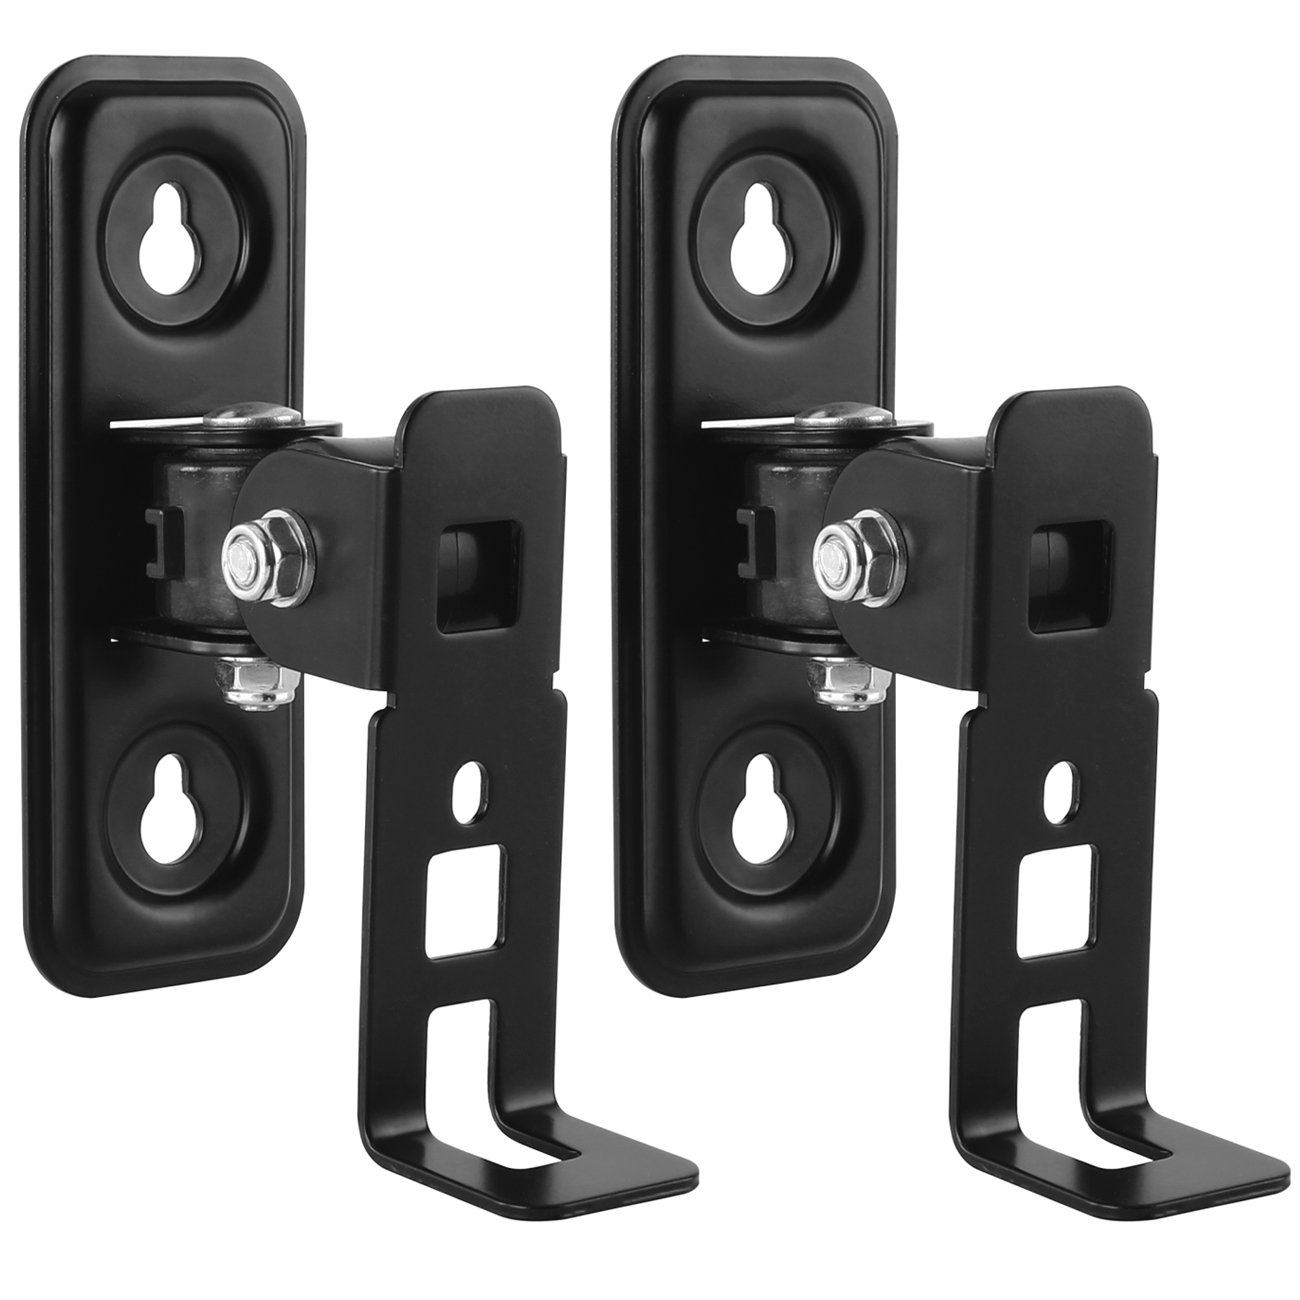 deleyCON Supporto a Muro per Casse Acustiche SONOS Play: 1 Girevole Inclinabile Full-Motion Mount Multiroom Speaker Nero MK-W-95